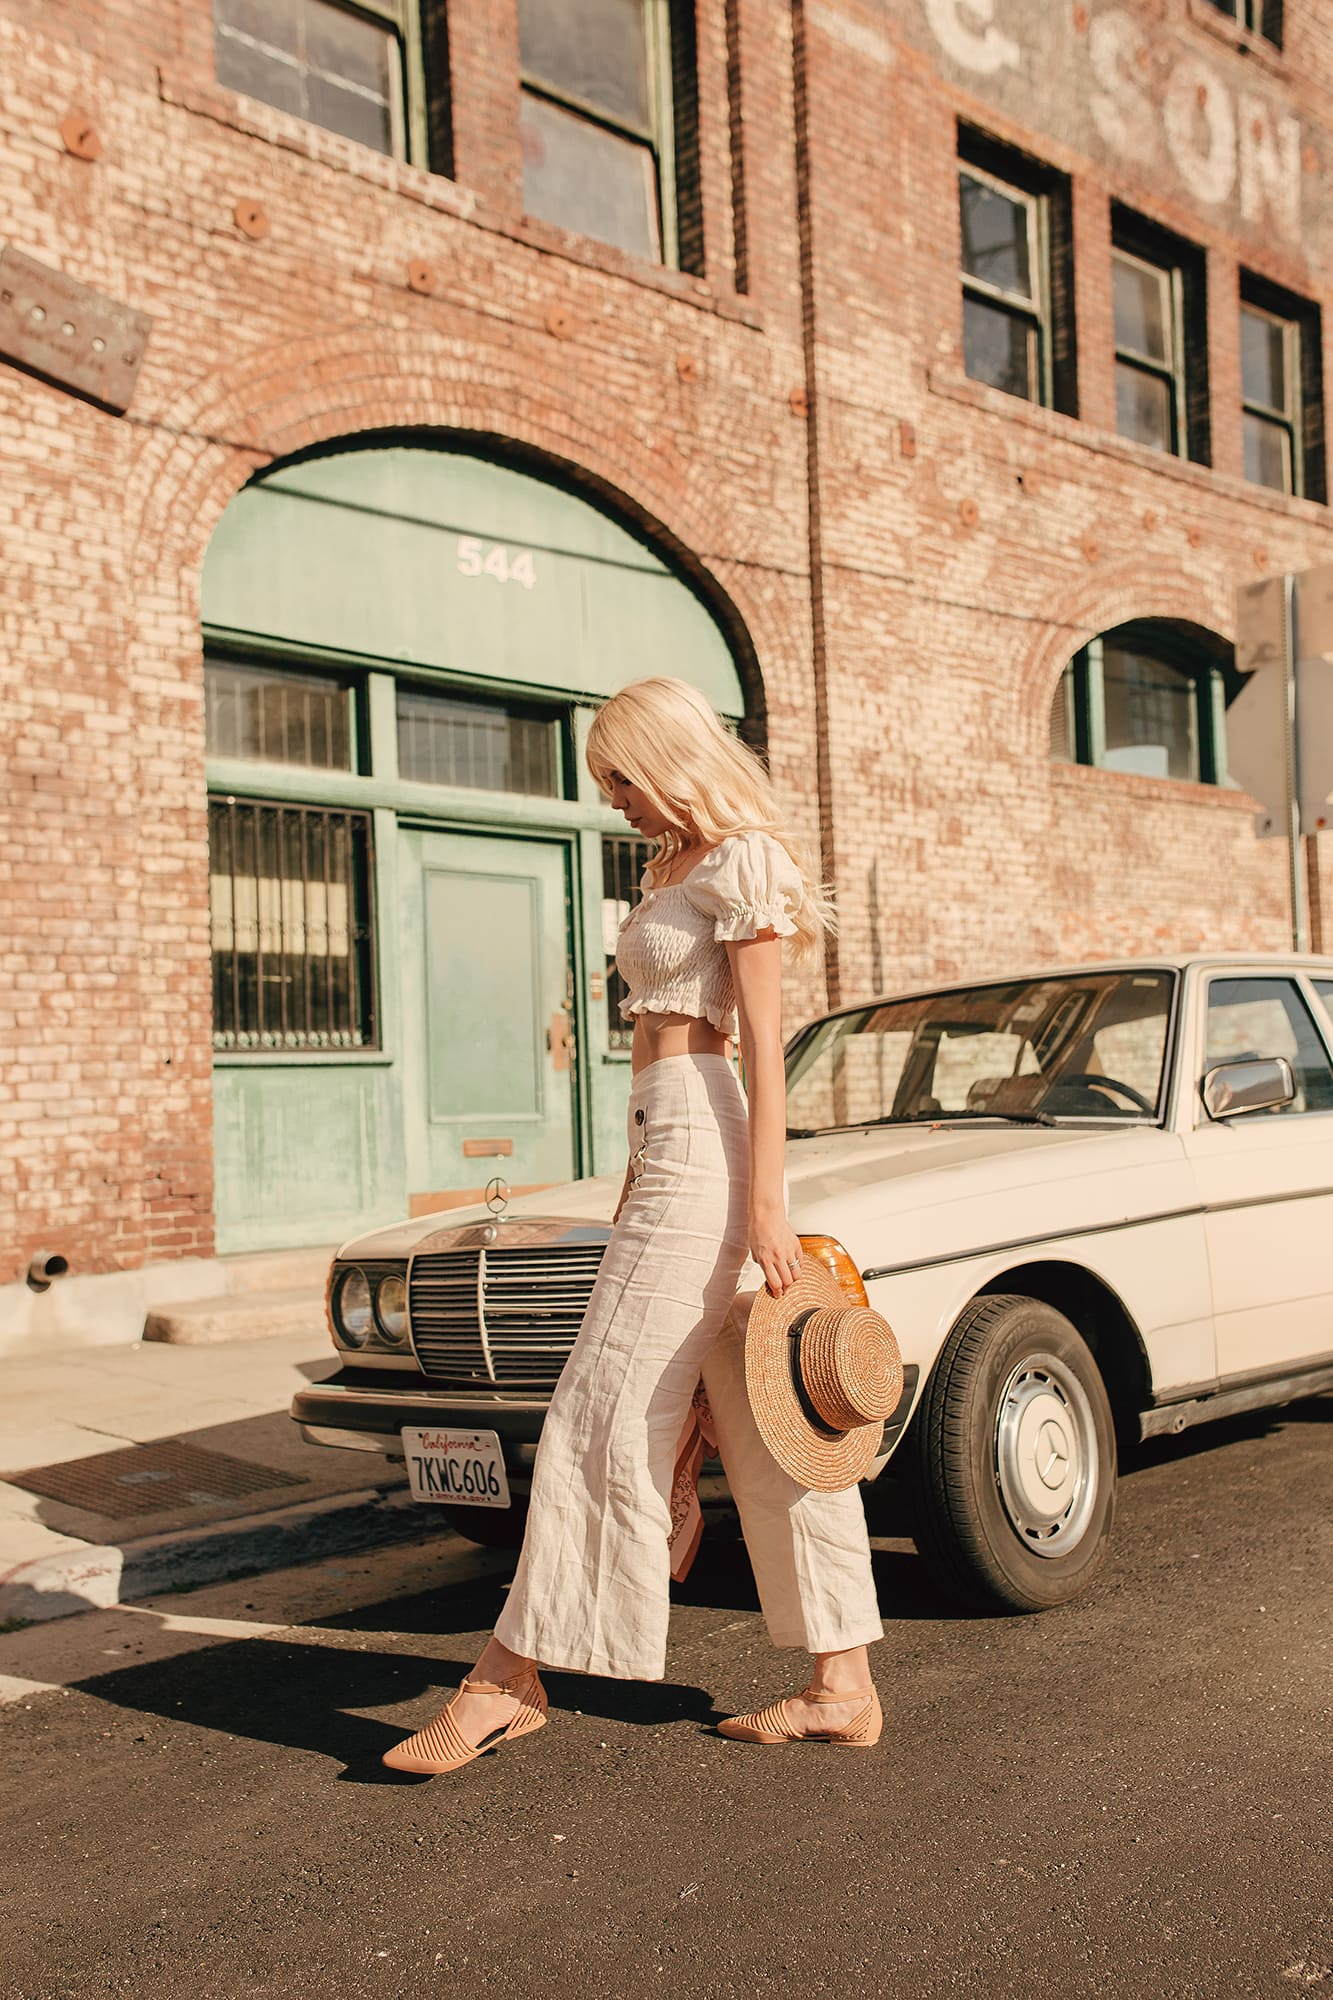 Blonde girl in vintage style by vintage car in DTLA